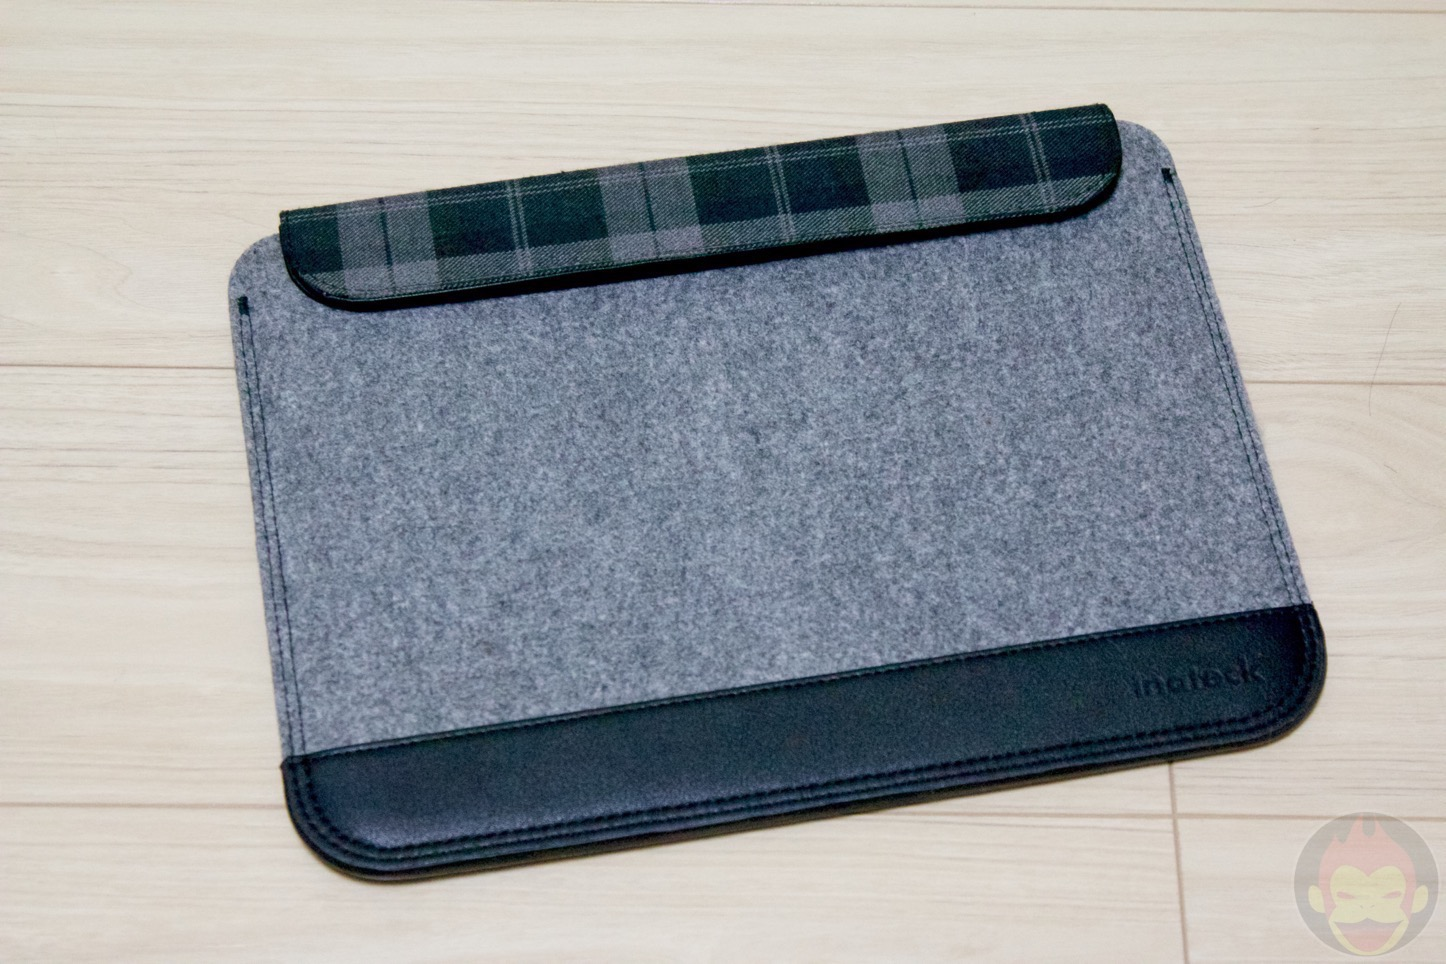 Inateck 12inch MacBook Case